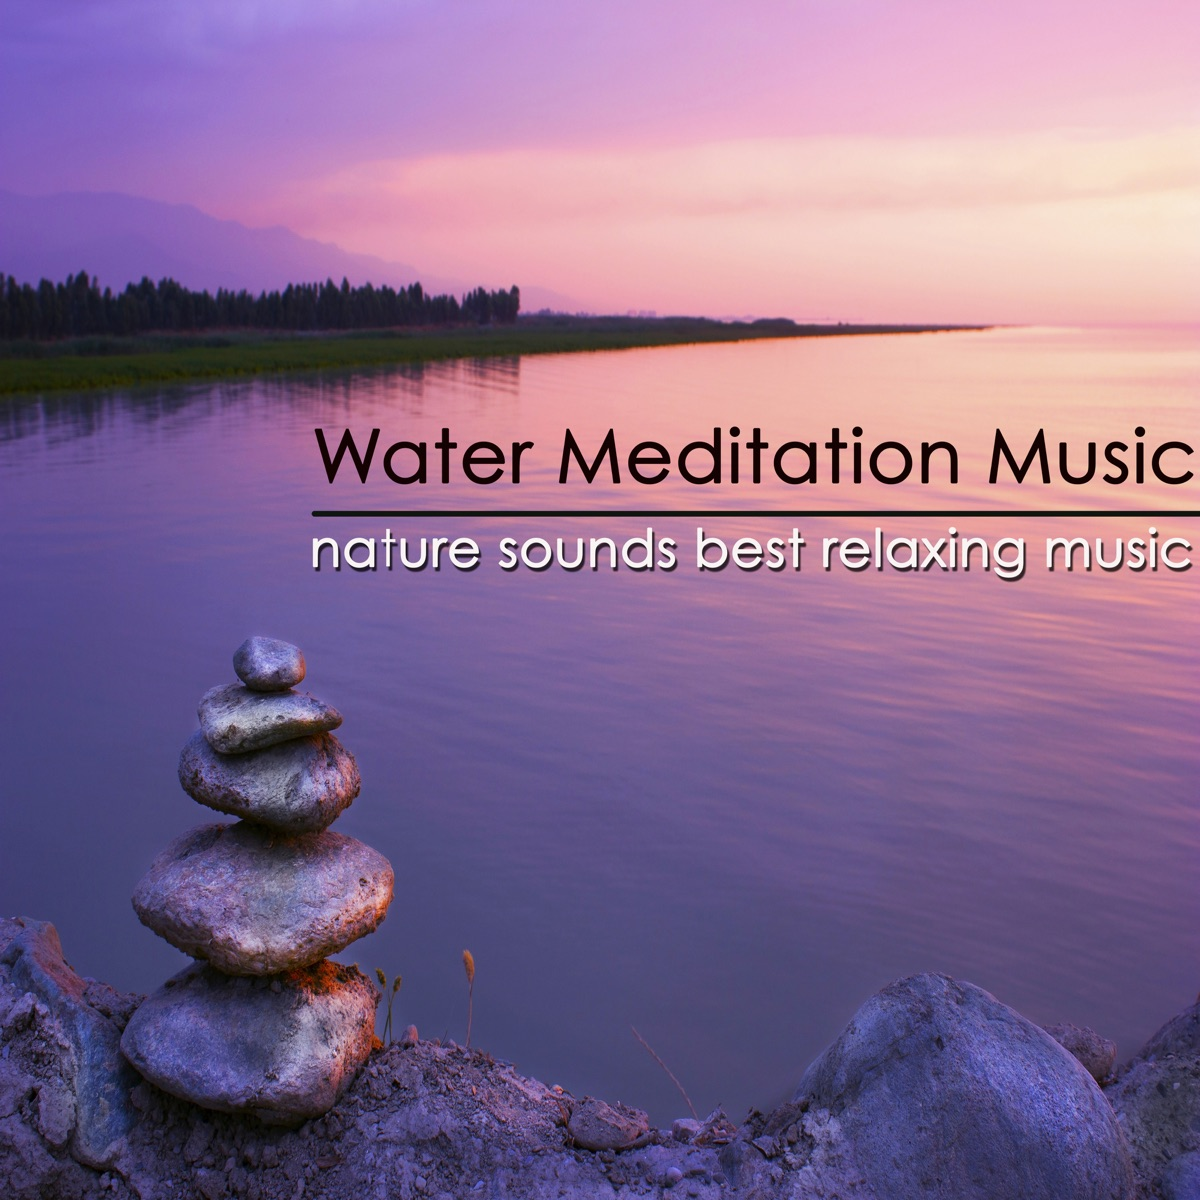 Water Meditation Music – Nature Sounds Best Relaxing Music to Keep